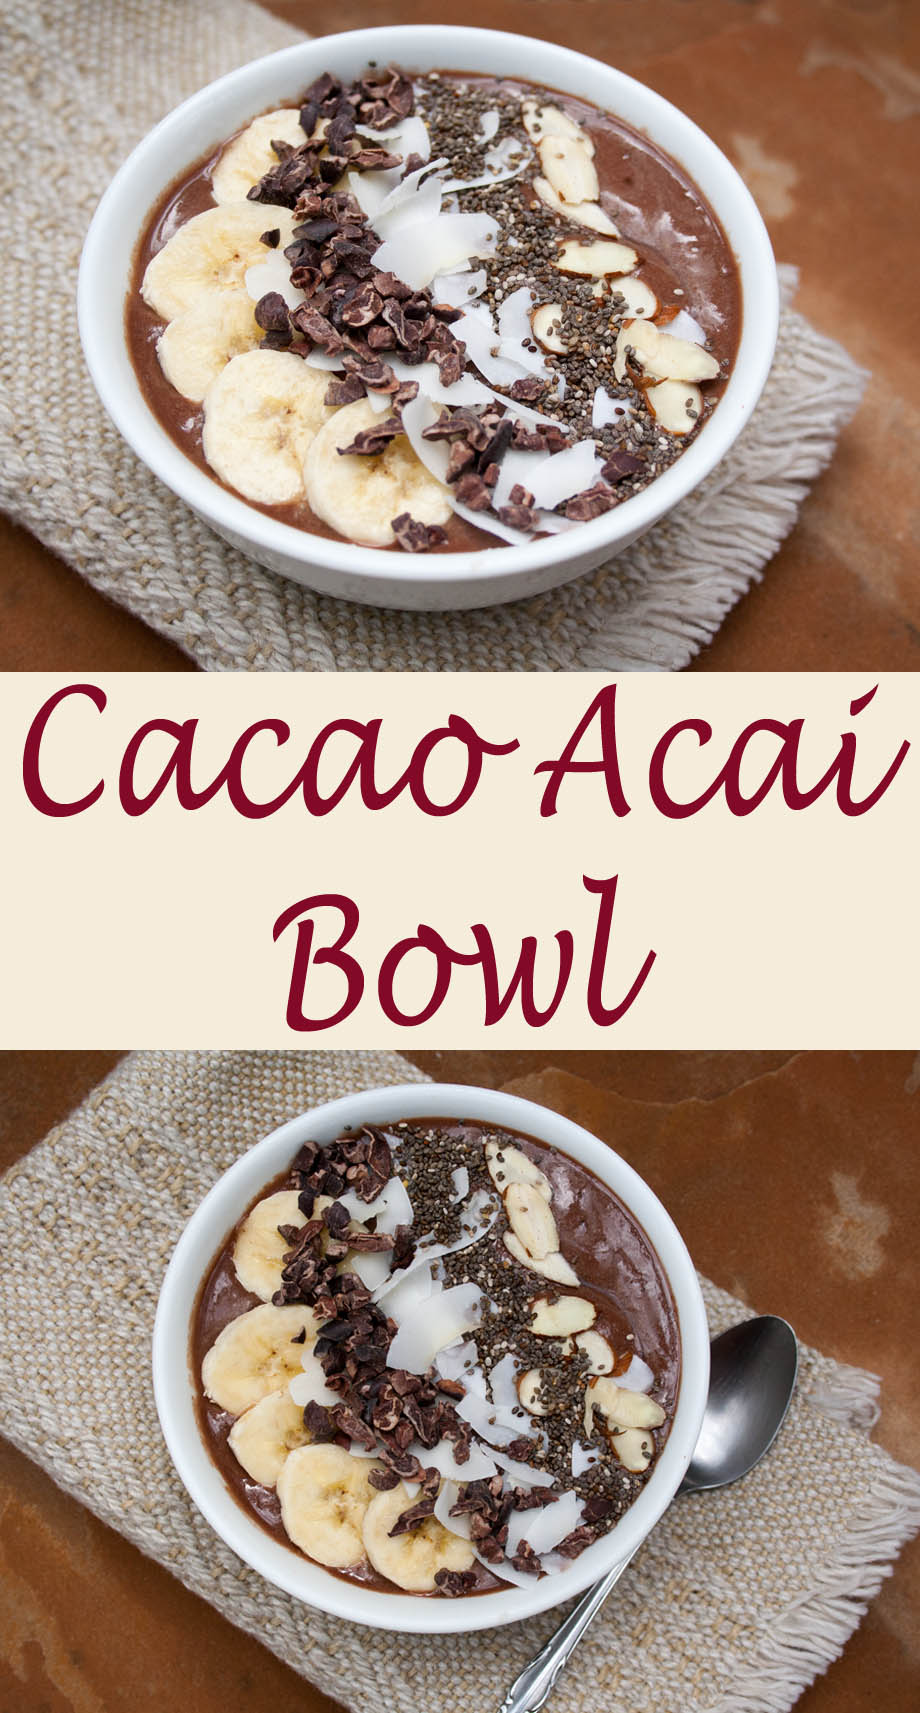 Cacao Acai Bowl collage photo.